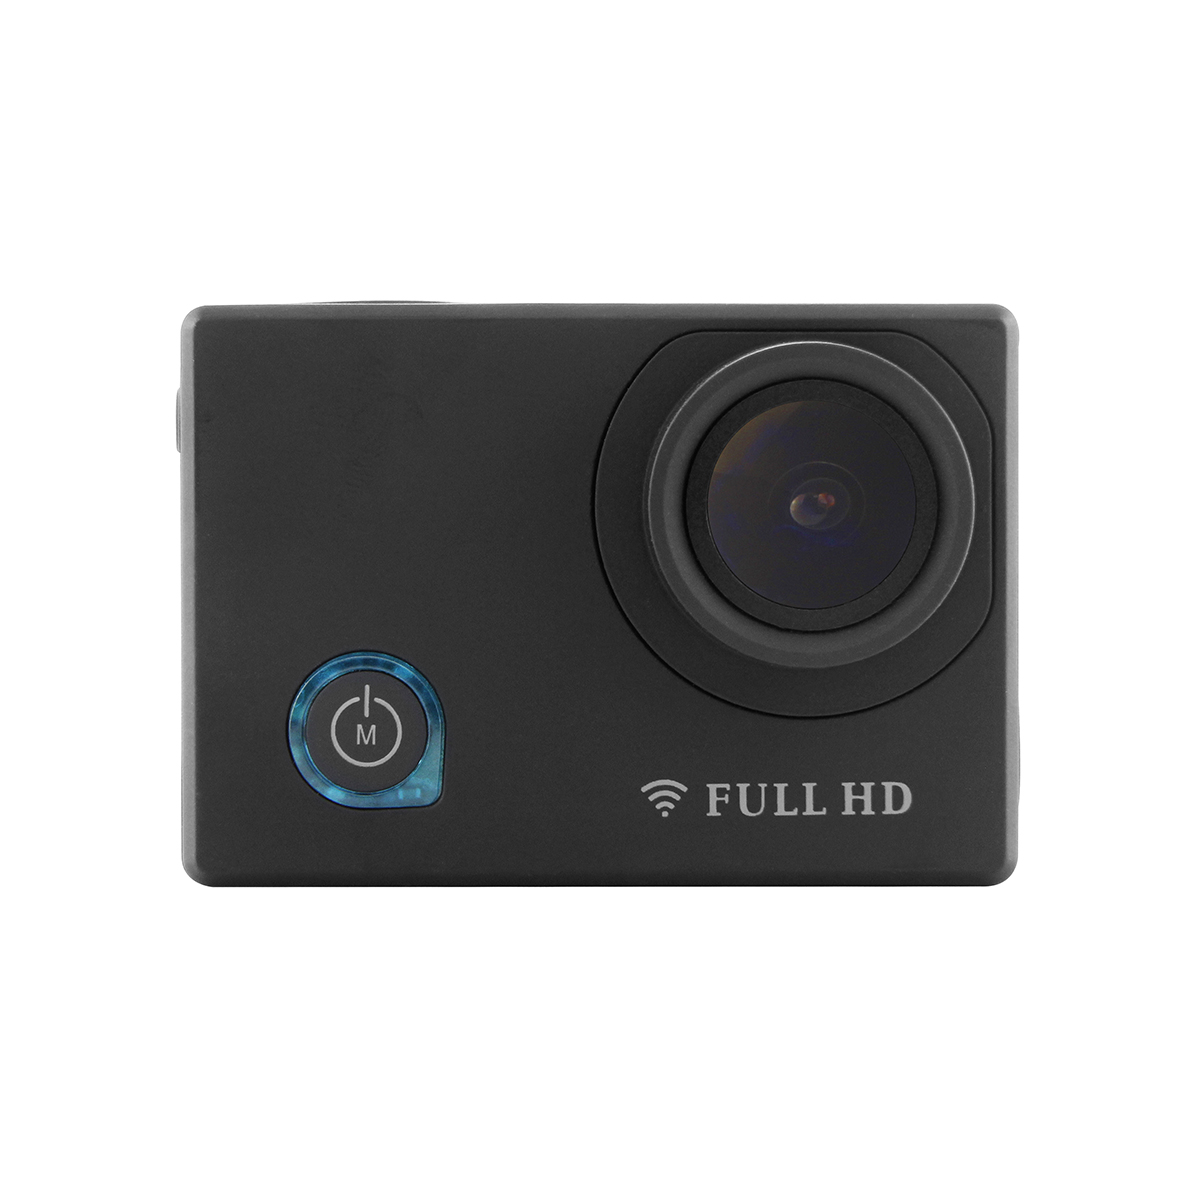 Blackview DV710 4K Ultra HD Sport DV 2.0 Inch Action Camera 170 Degrees Wide Angle Lens